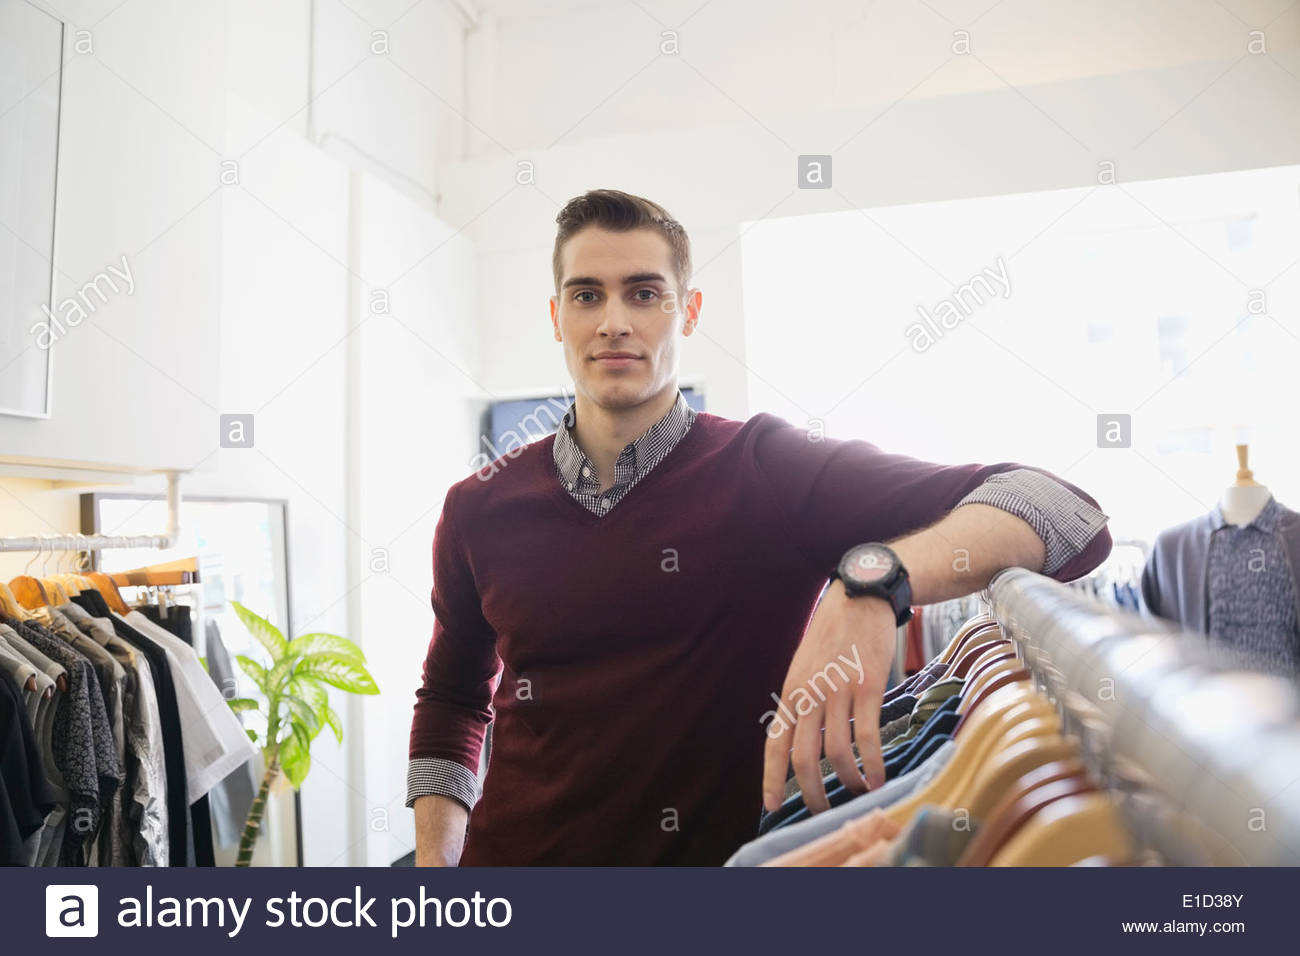 Portrait of business owner in clothing shop - Stock Image